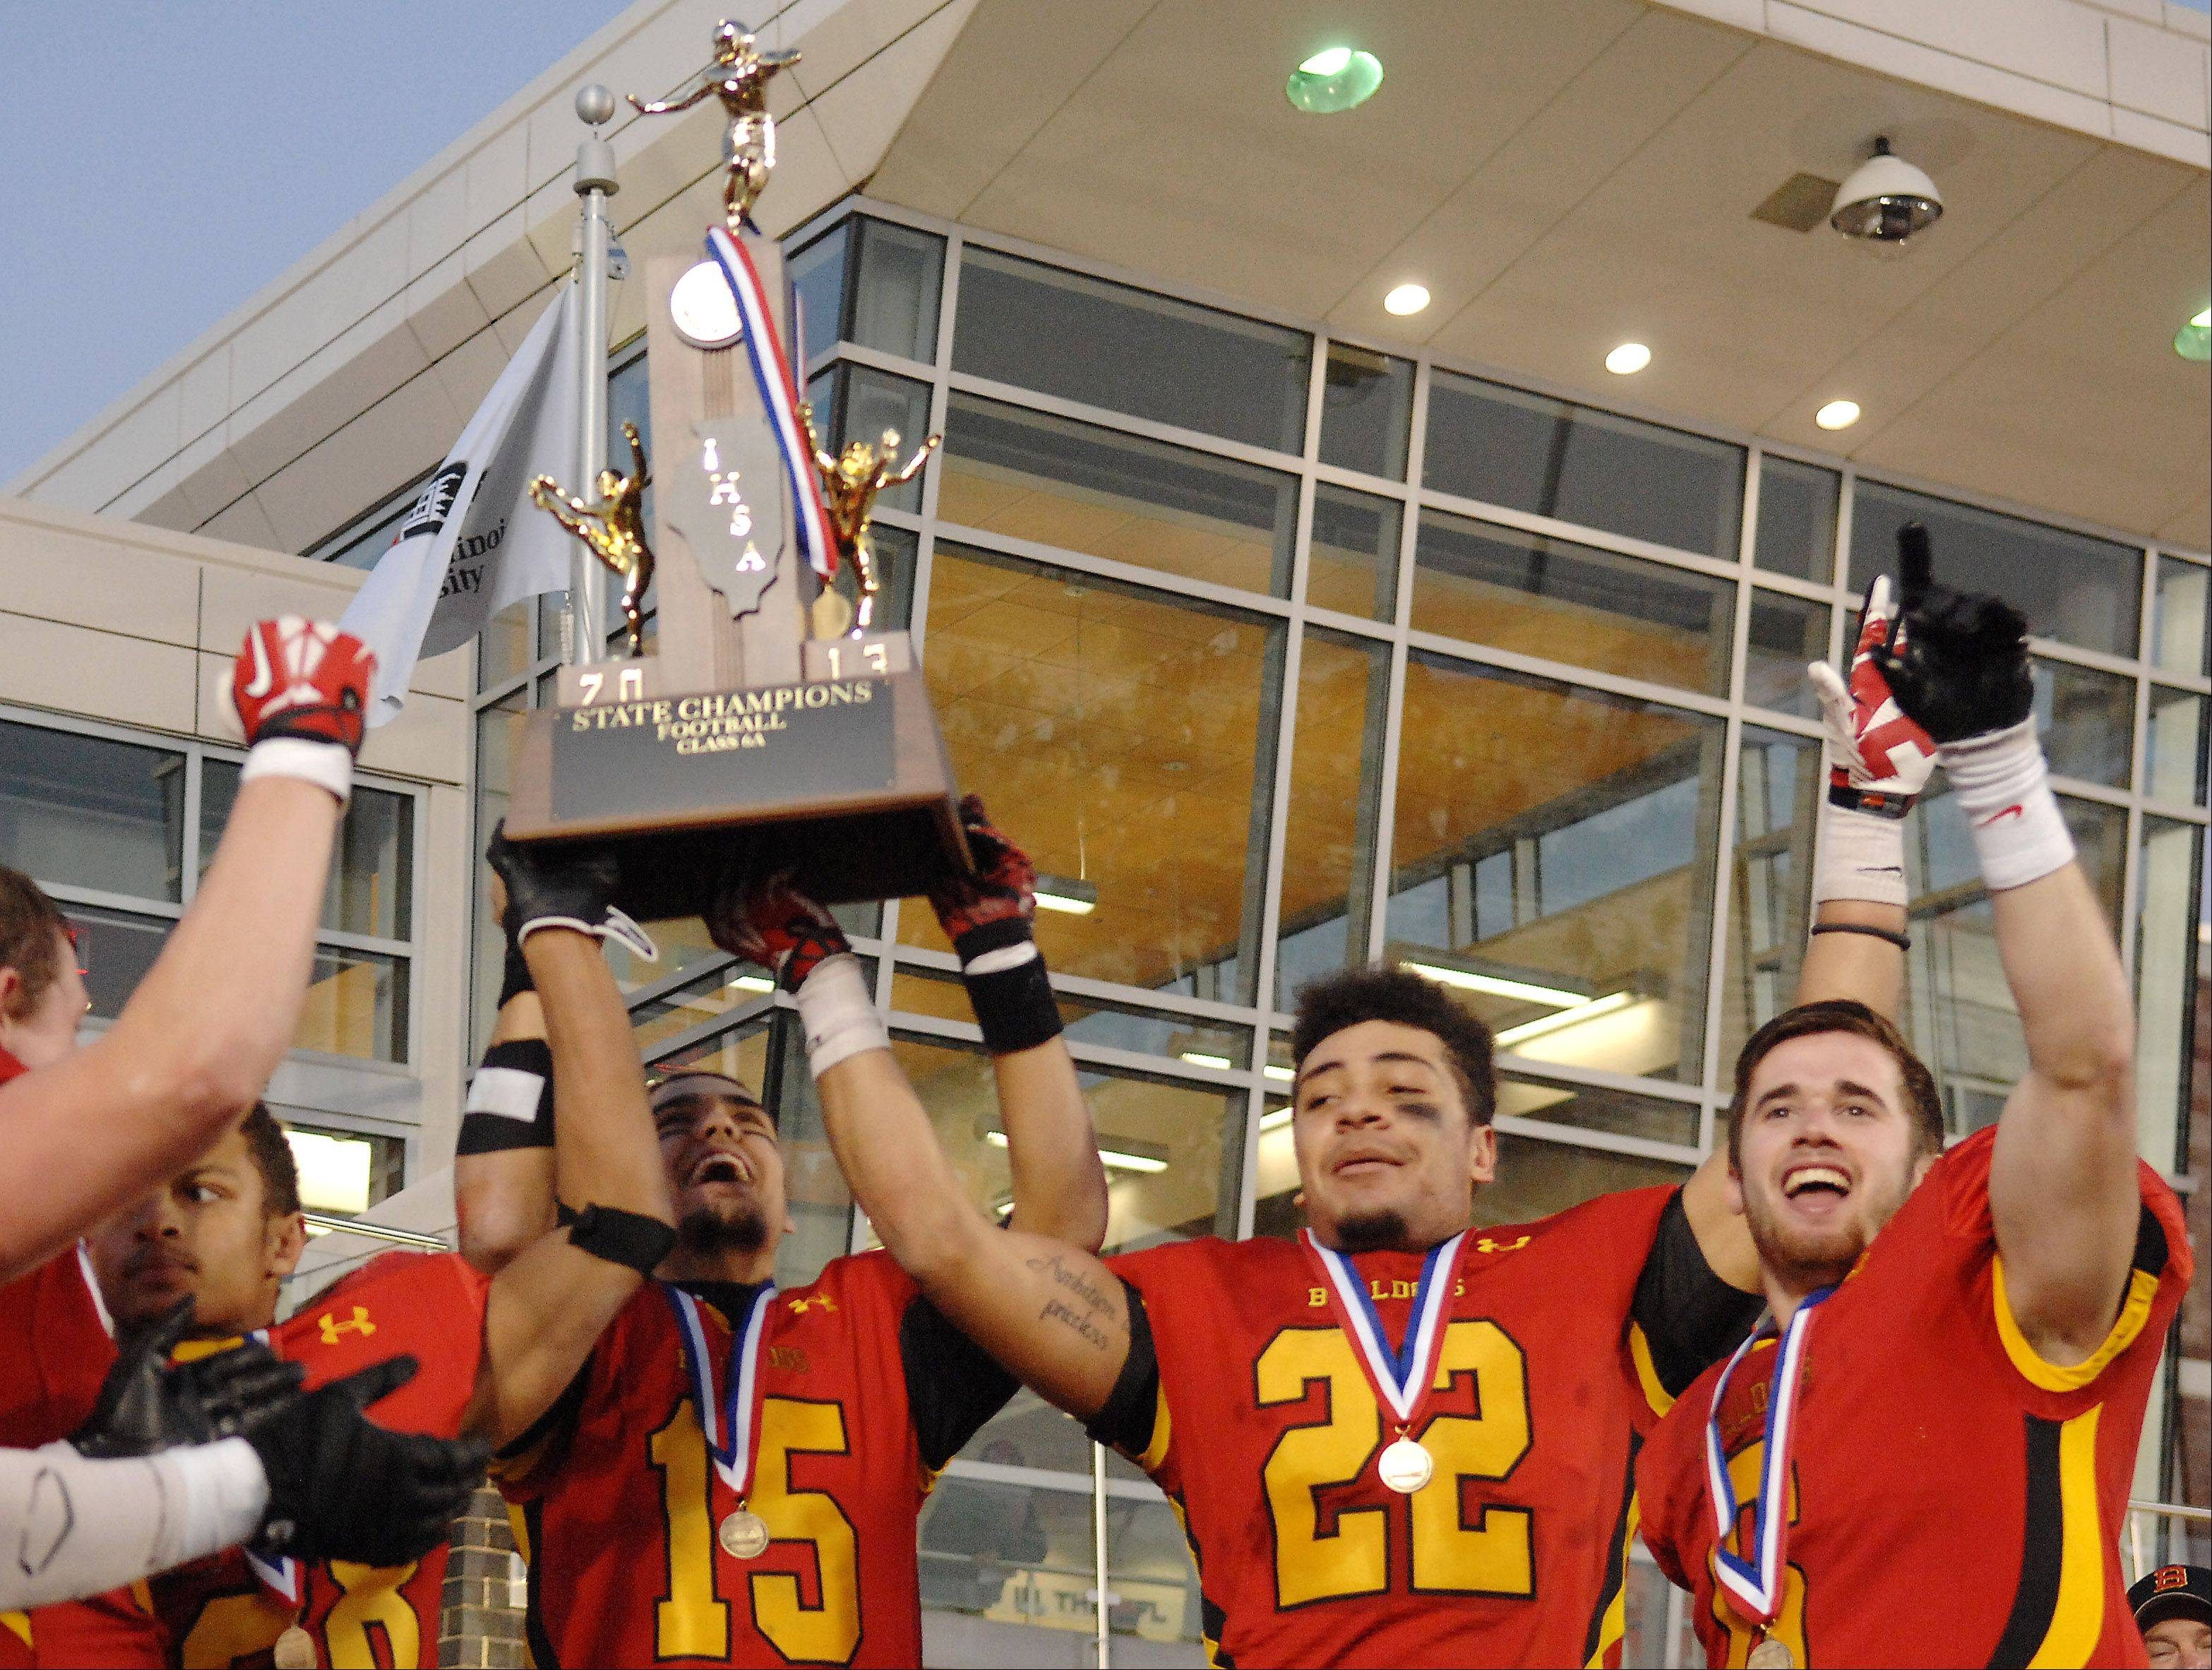 The Batavia captains hoist the championship trophy following Saturday's 6A championship game in DeKalb.